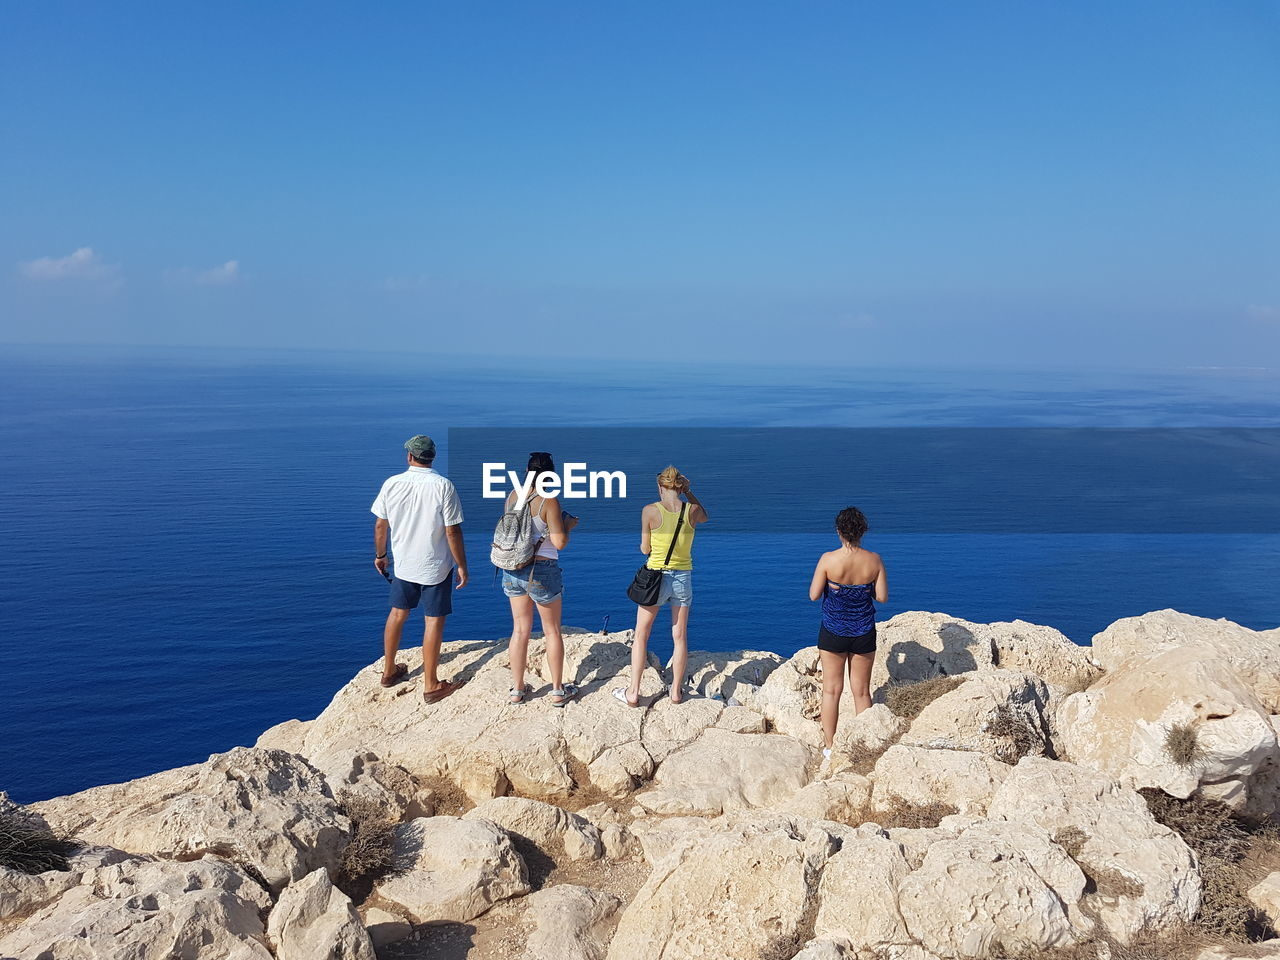 sea, horizon over water, water, real people, rock - object, nature, scenics, men, sky, lifestyles, leisure activity, rear view, day, beauty in nature, blue, standing, outdoors, women, togetherness, vacations, friendship, full length, people